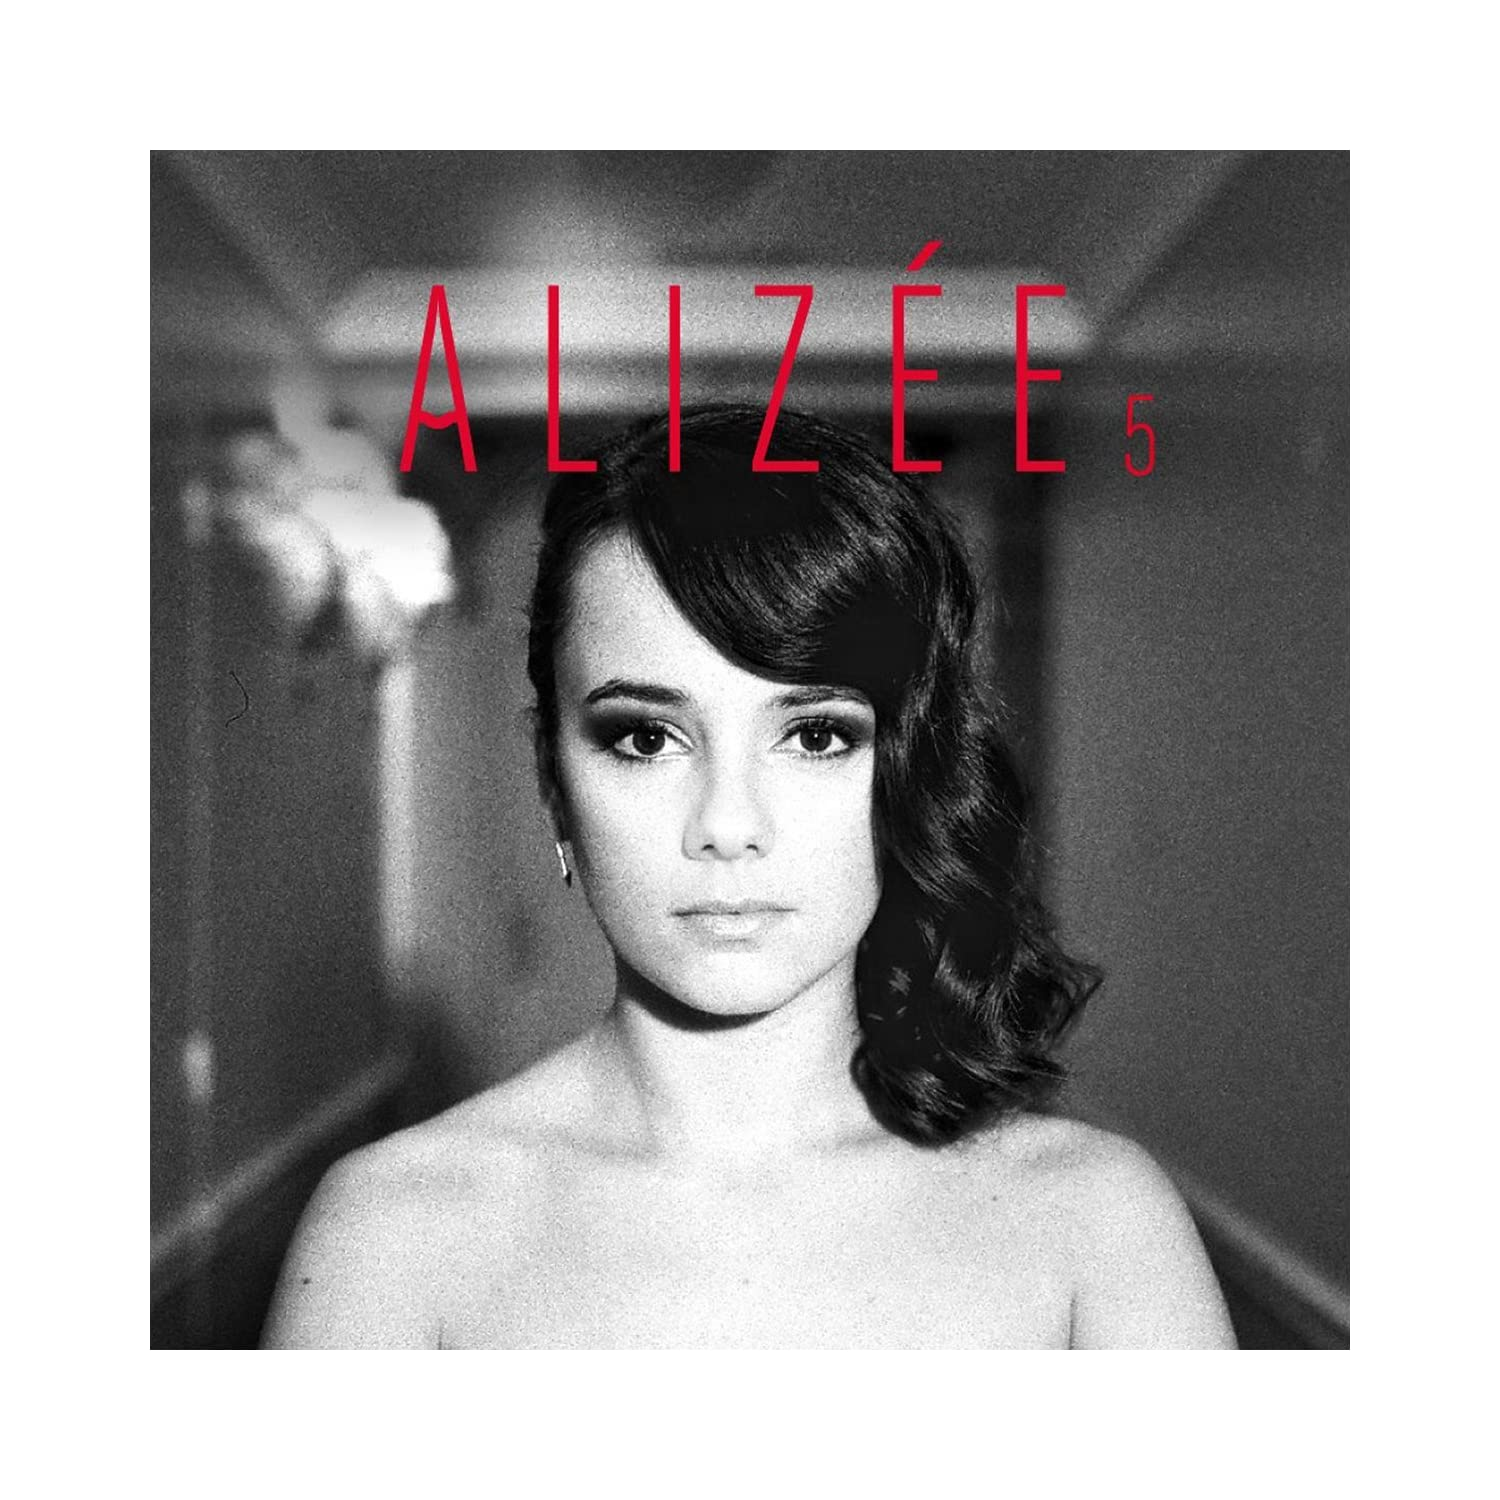 Alizée 5 on Amazon.com